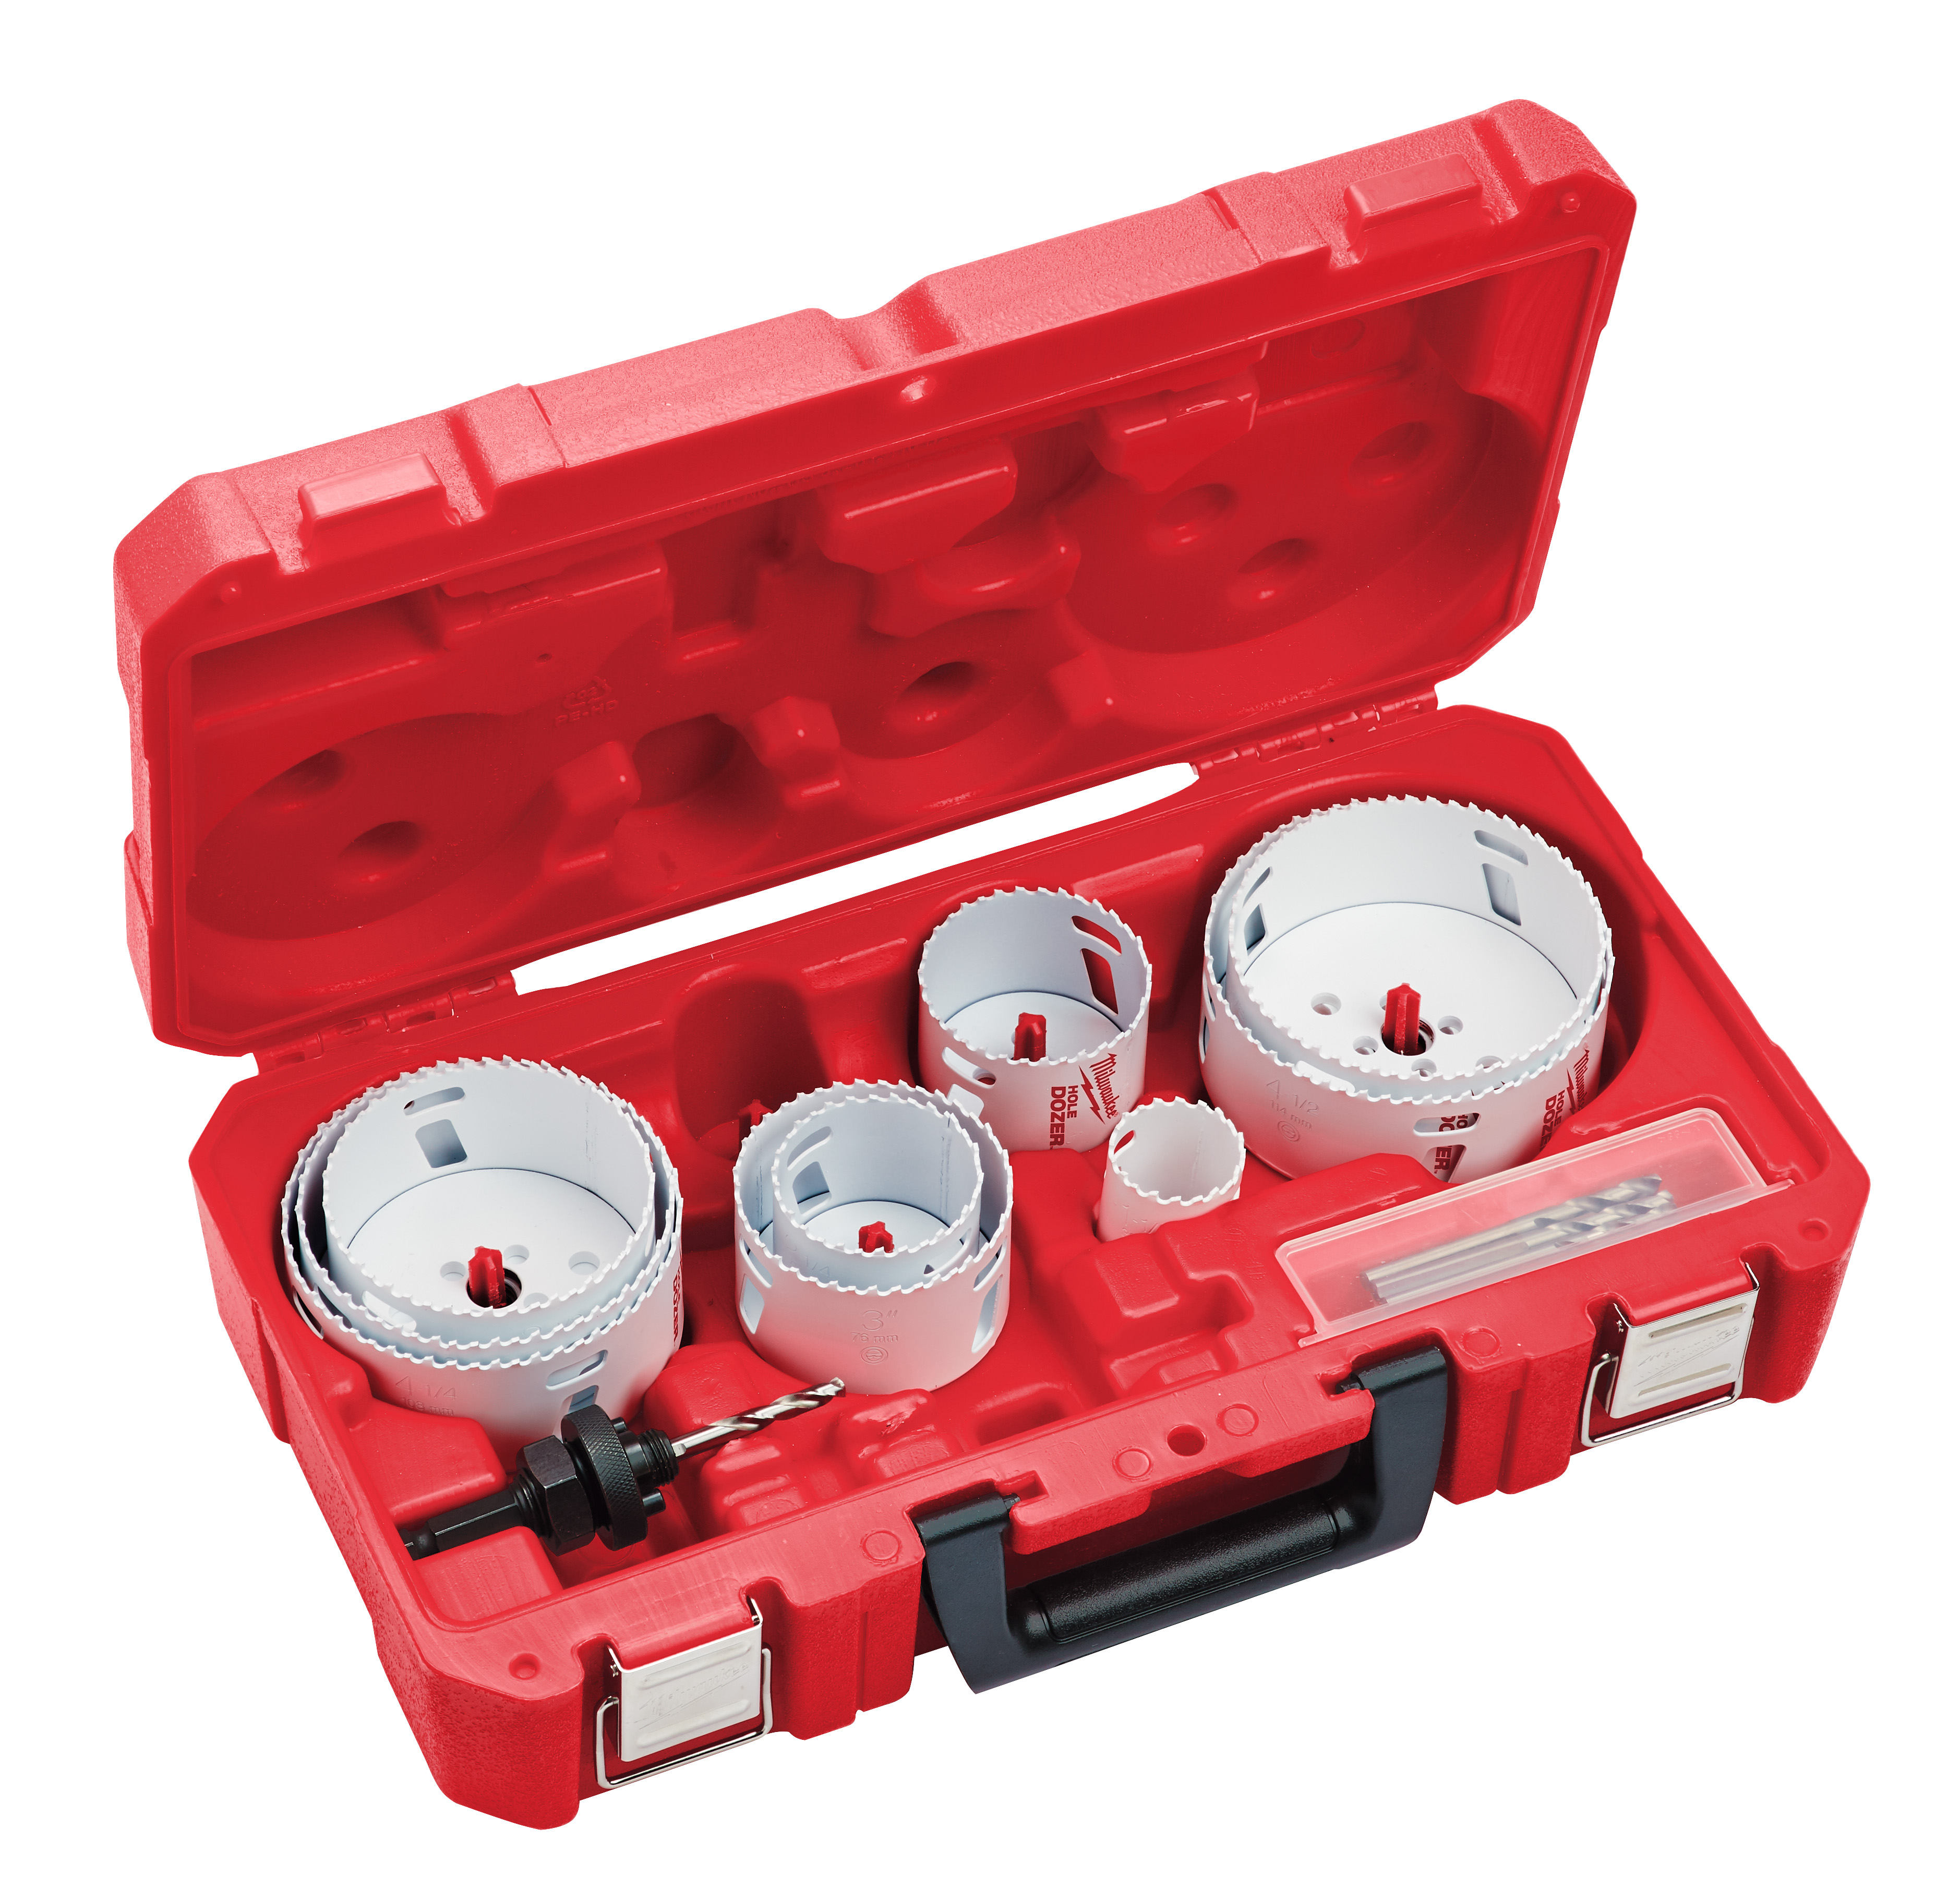 Milwaukee® 49-22-4142 Hole Dozer™ Plumber's Large Diameter Hole Saw Kit, 12 Pieces, For Use With 49-56-7210, 49-56-7240, 49-56-7250 and 49-56-9100 Quick-Change Arbor, Bi-Metal/HSS